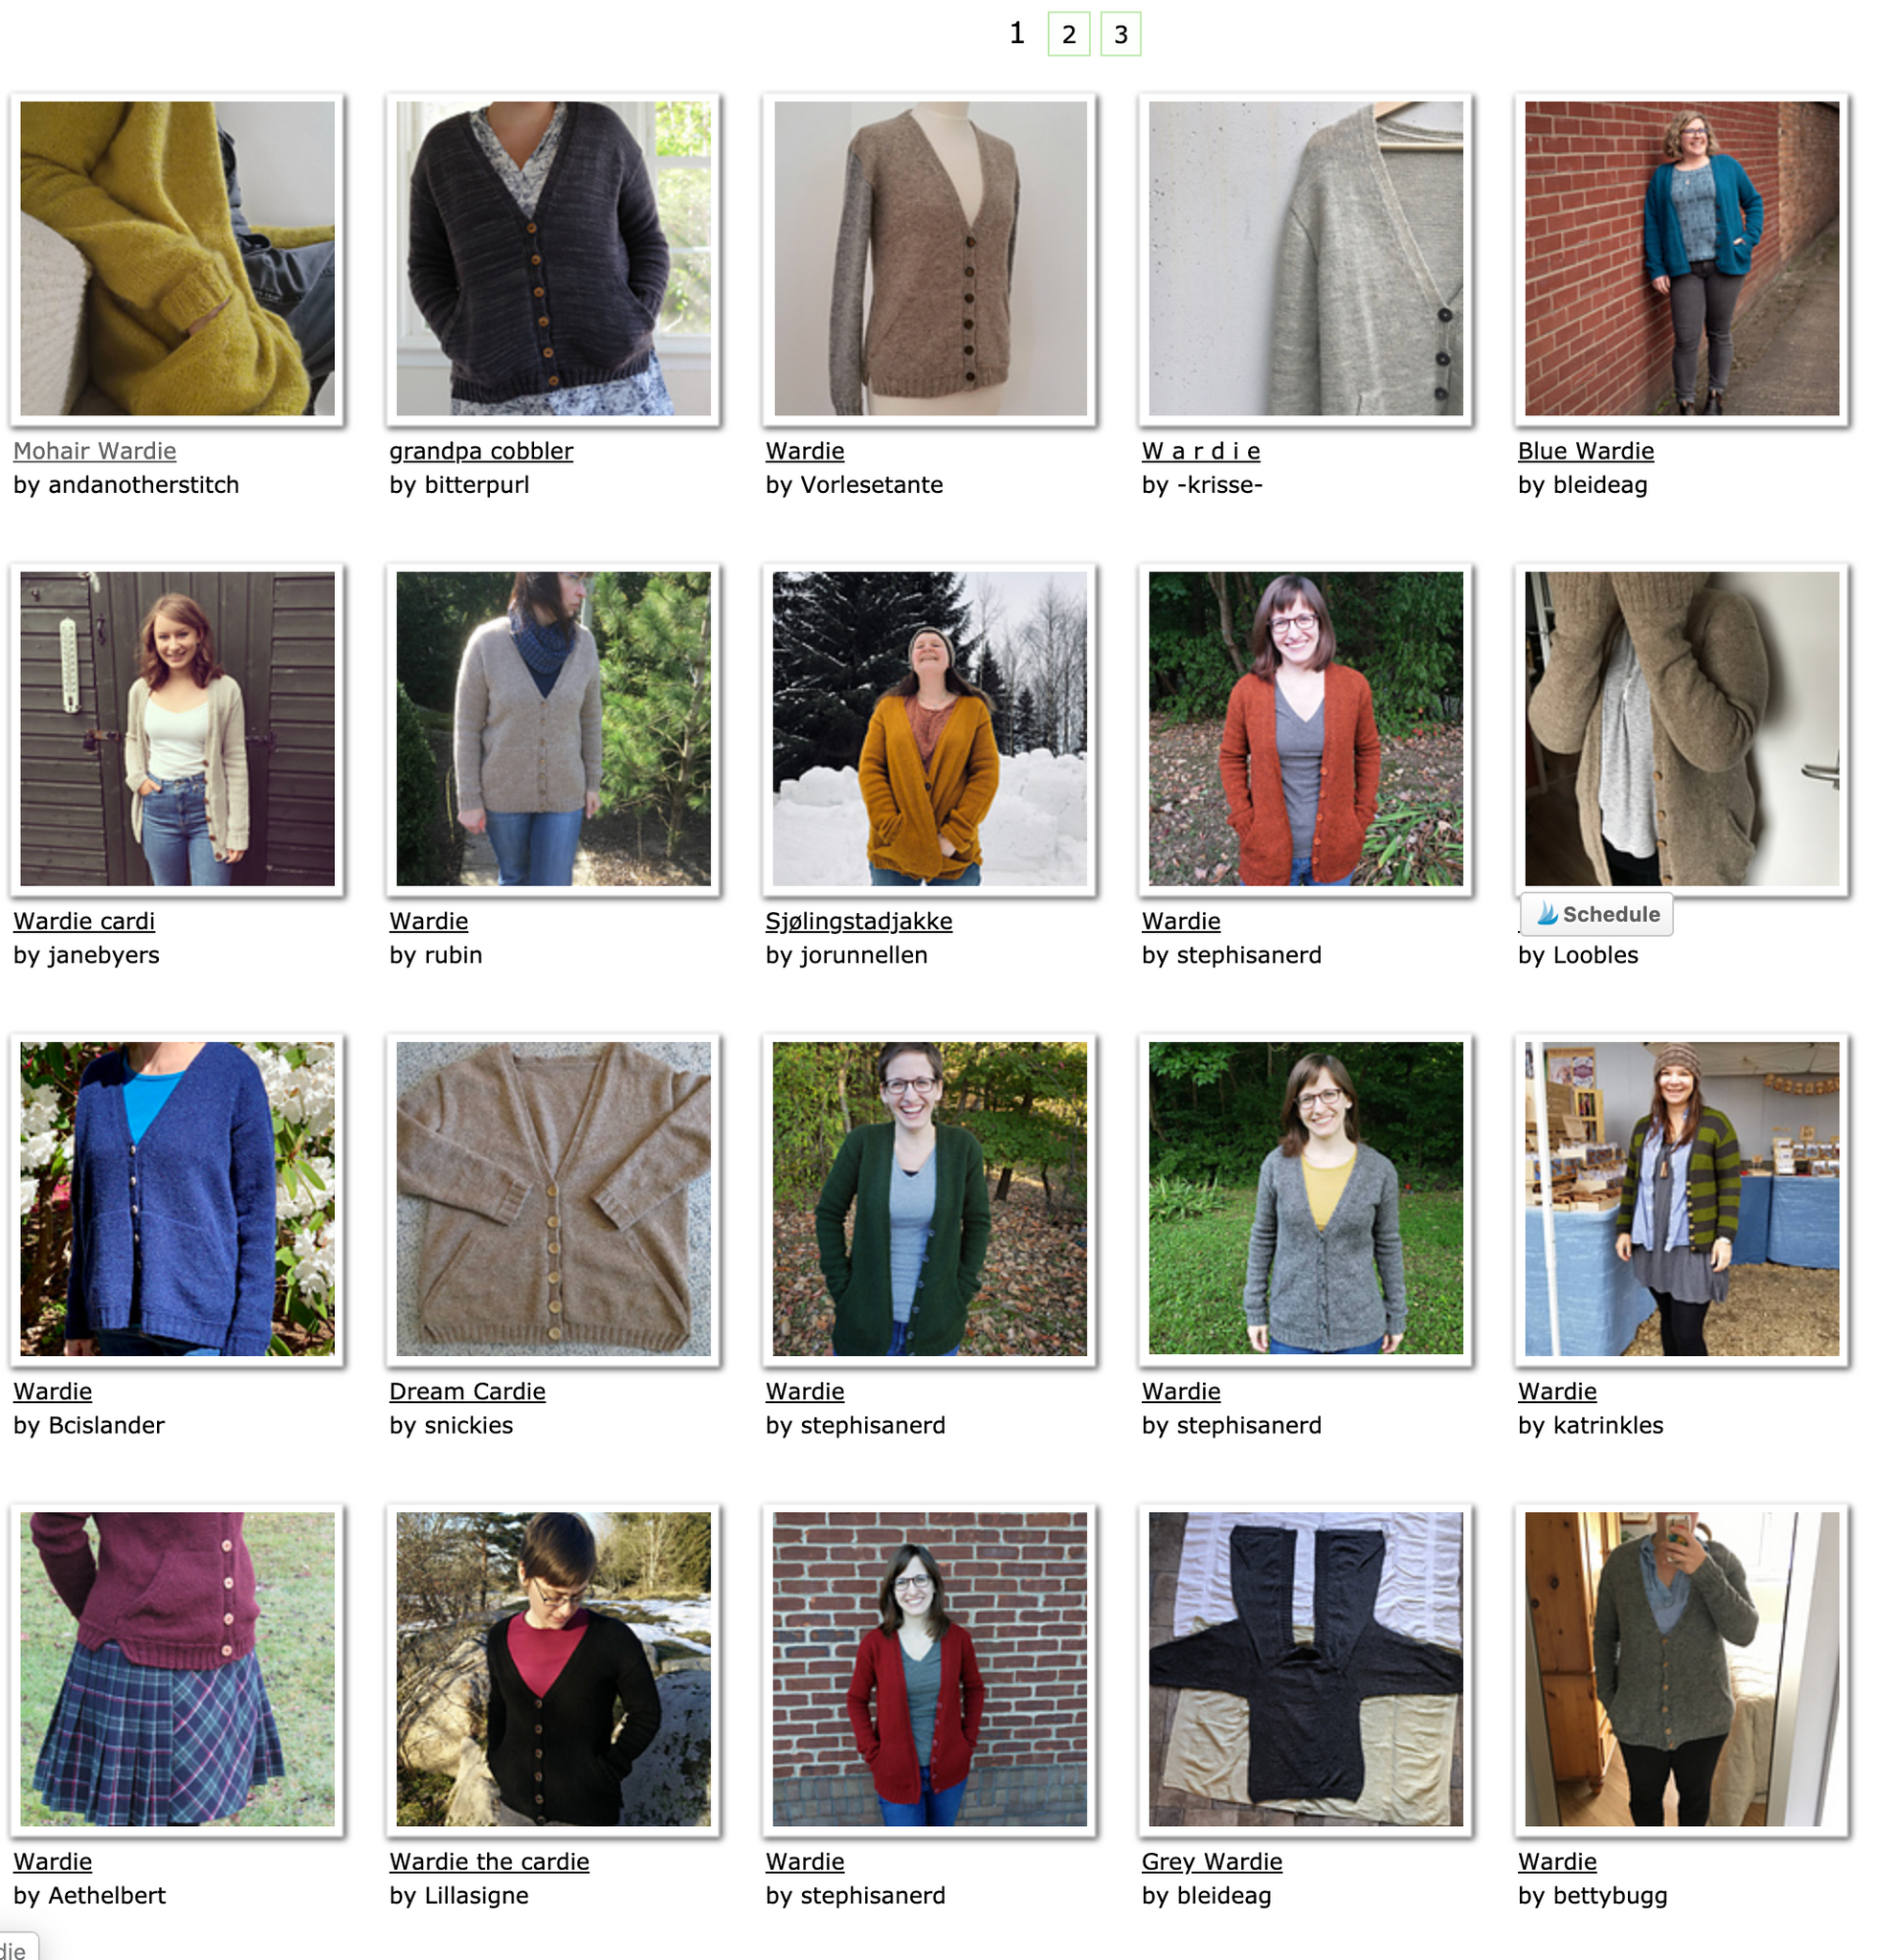 screenshot of Ravelry projects for Wardie cardigan